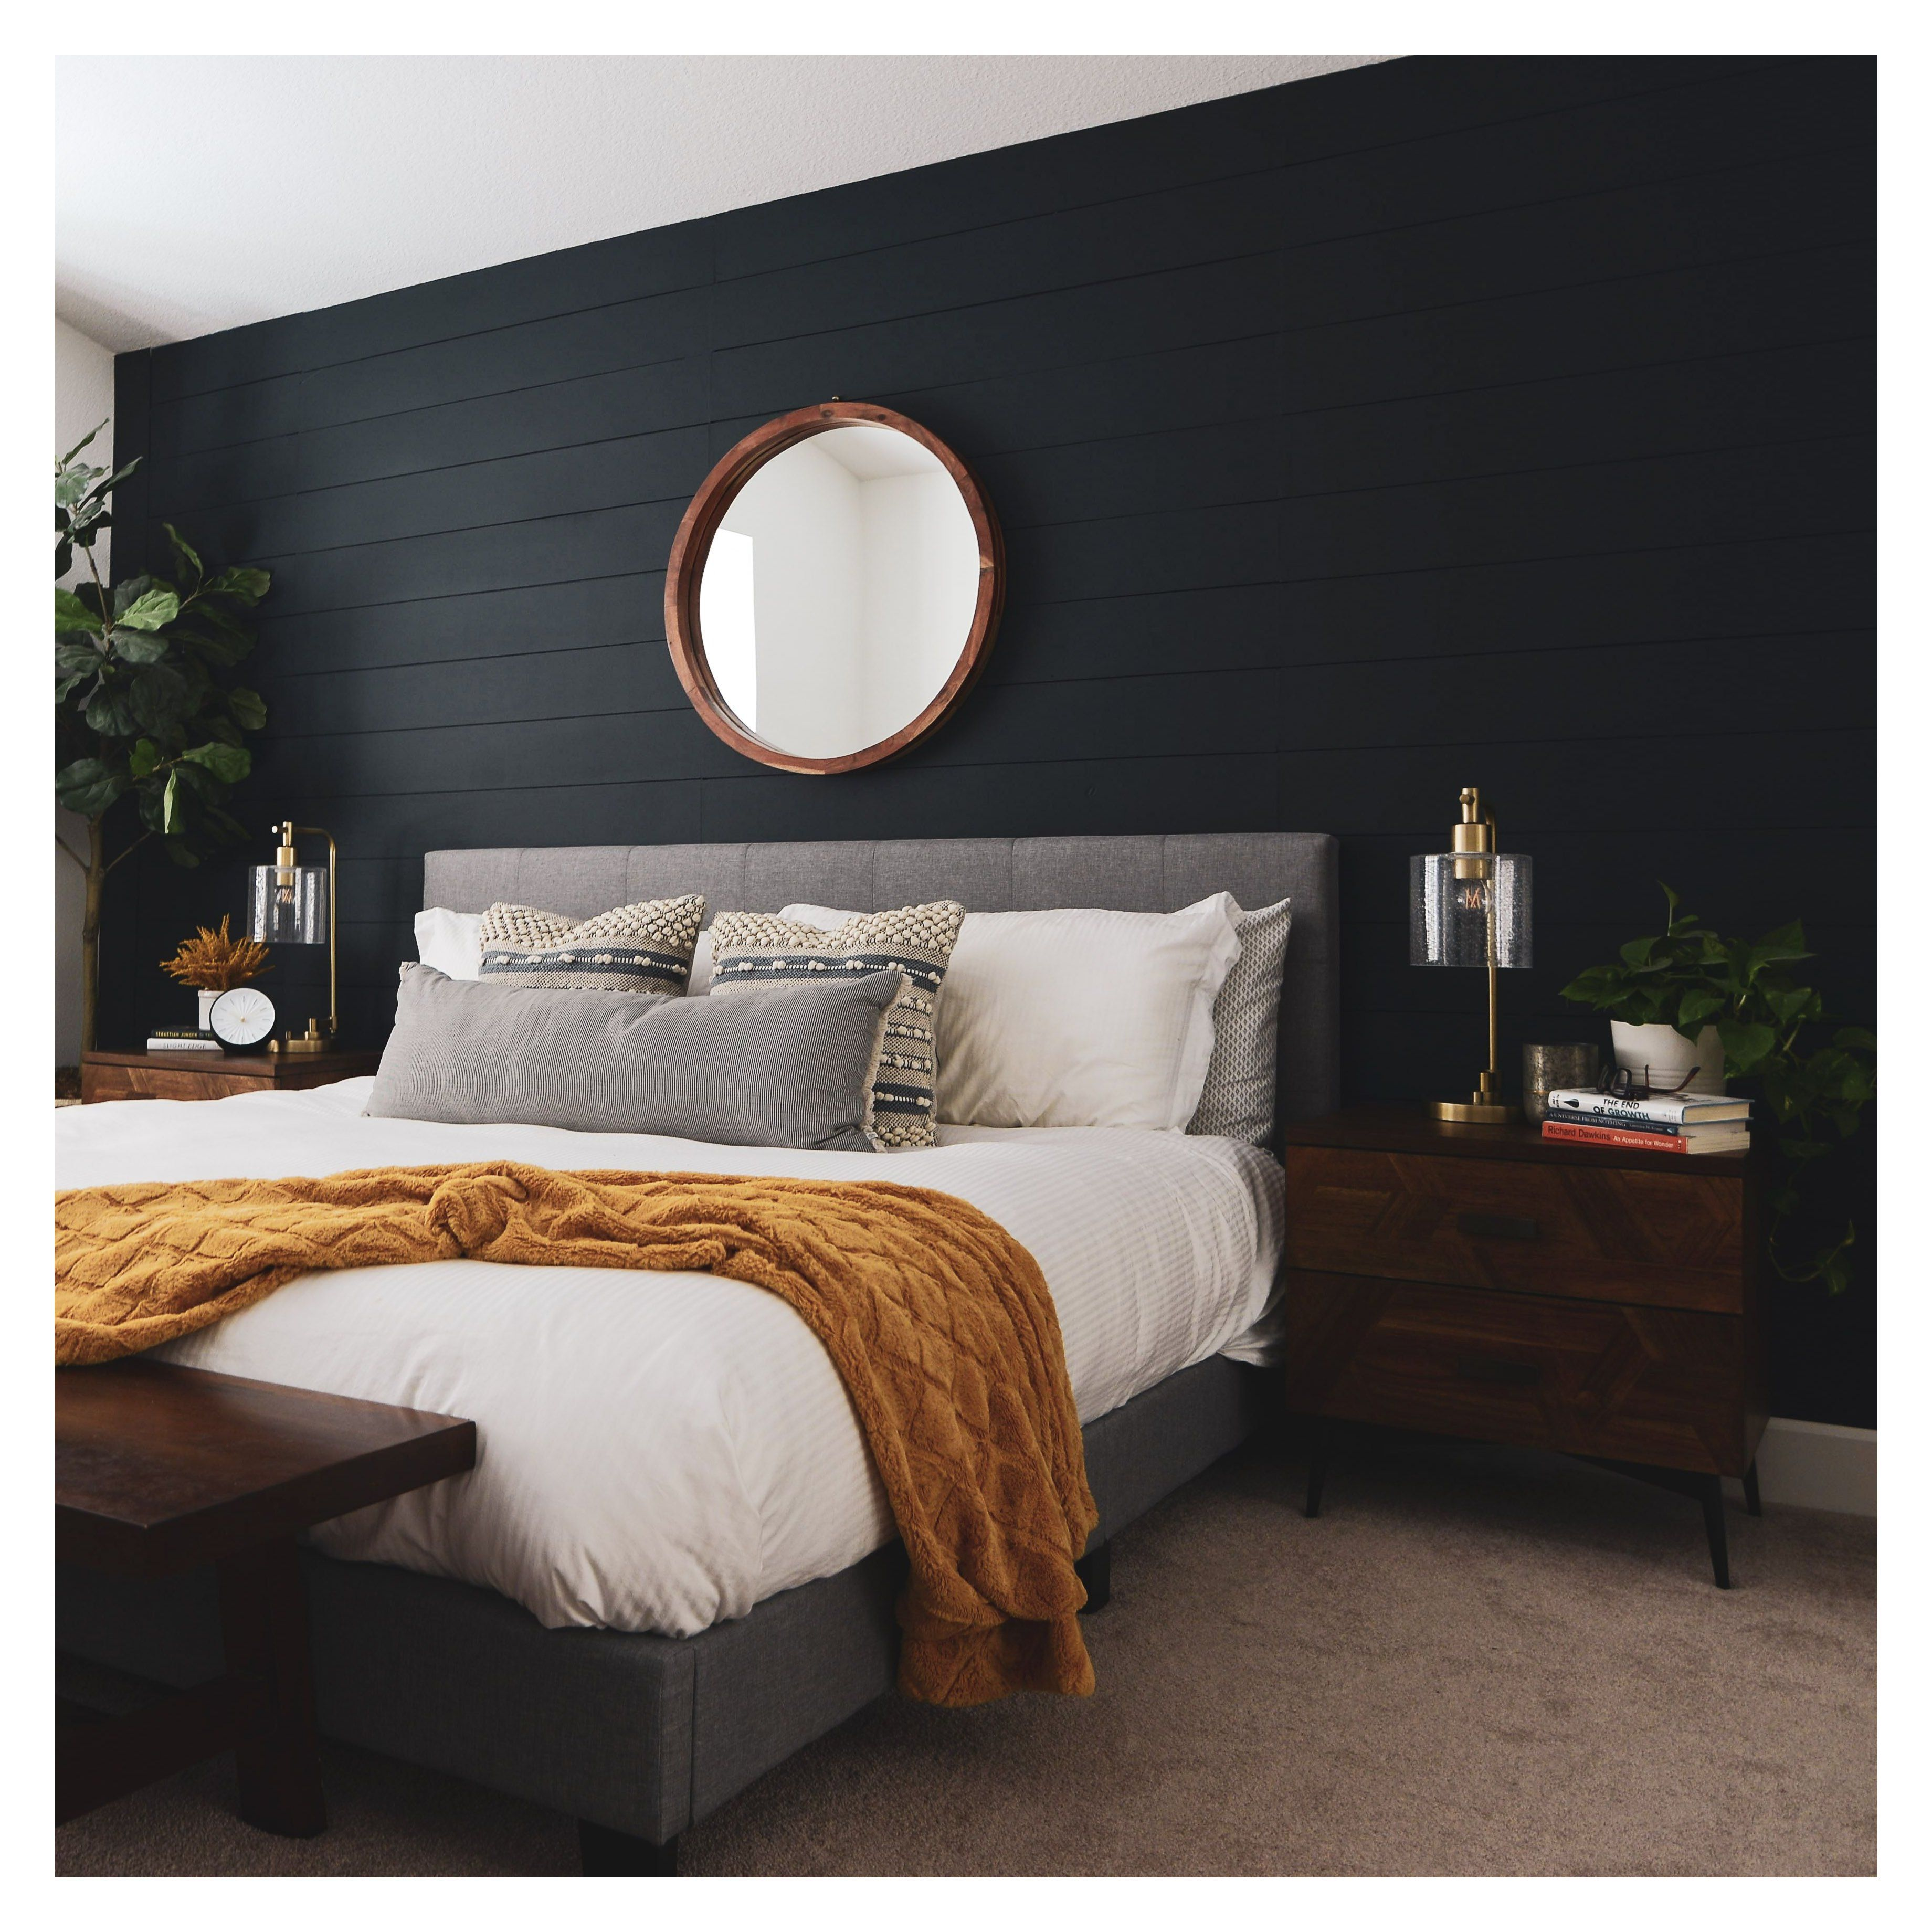 Master Bedroom Navy Accent Wall #navy #accent #wall #bedroom Bay Area design project by Ramona Avenue. Dark Navy accent shiplap wall. Modern, clean, and fun.